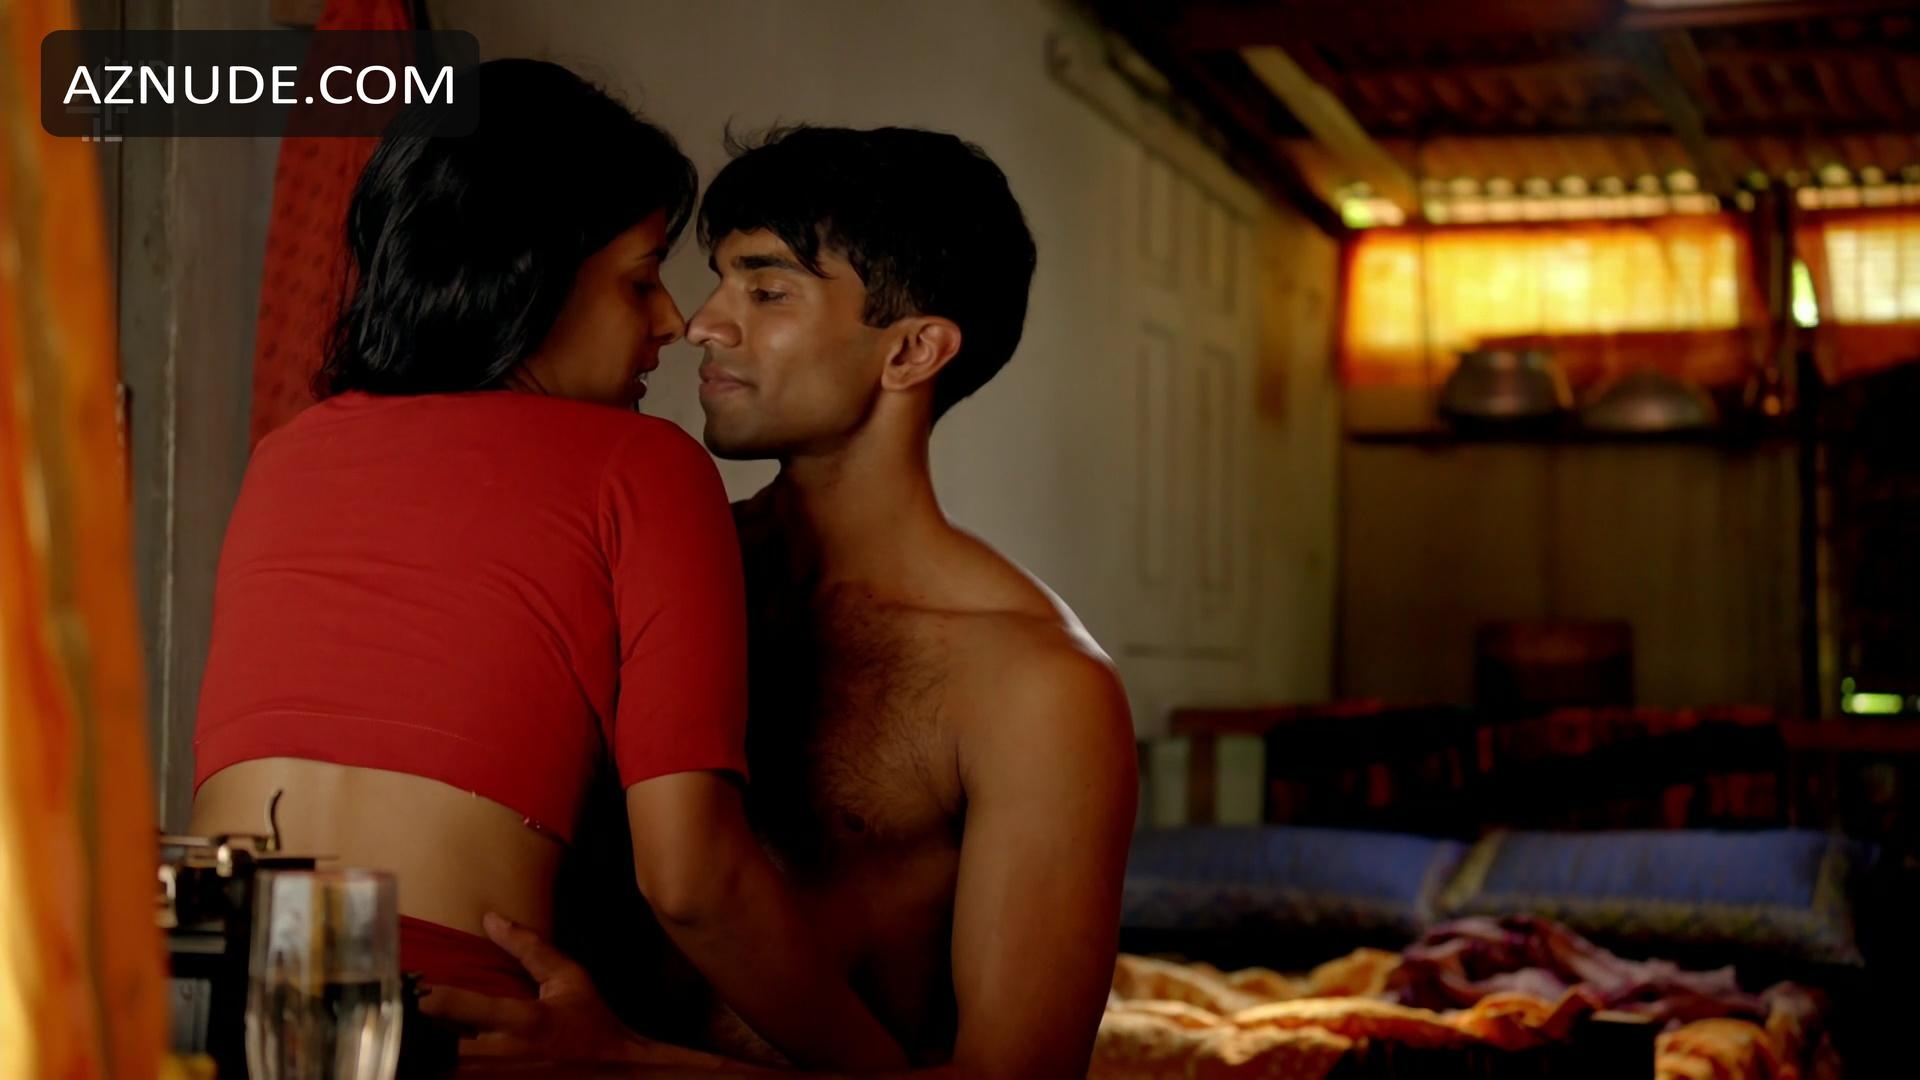 Indian Gay Video Site